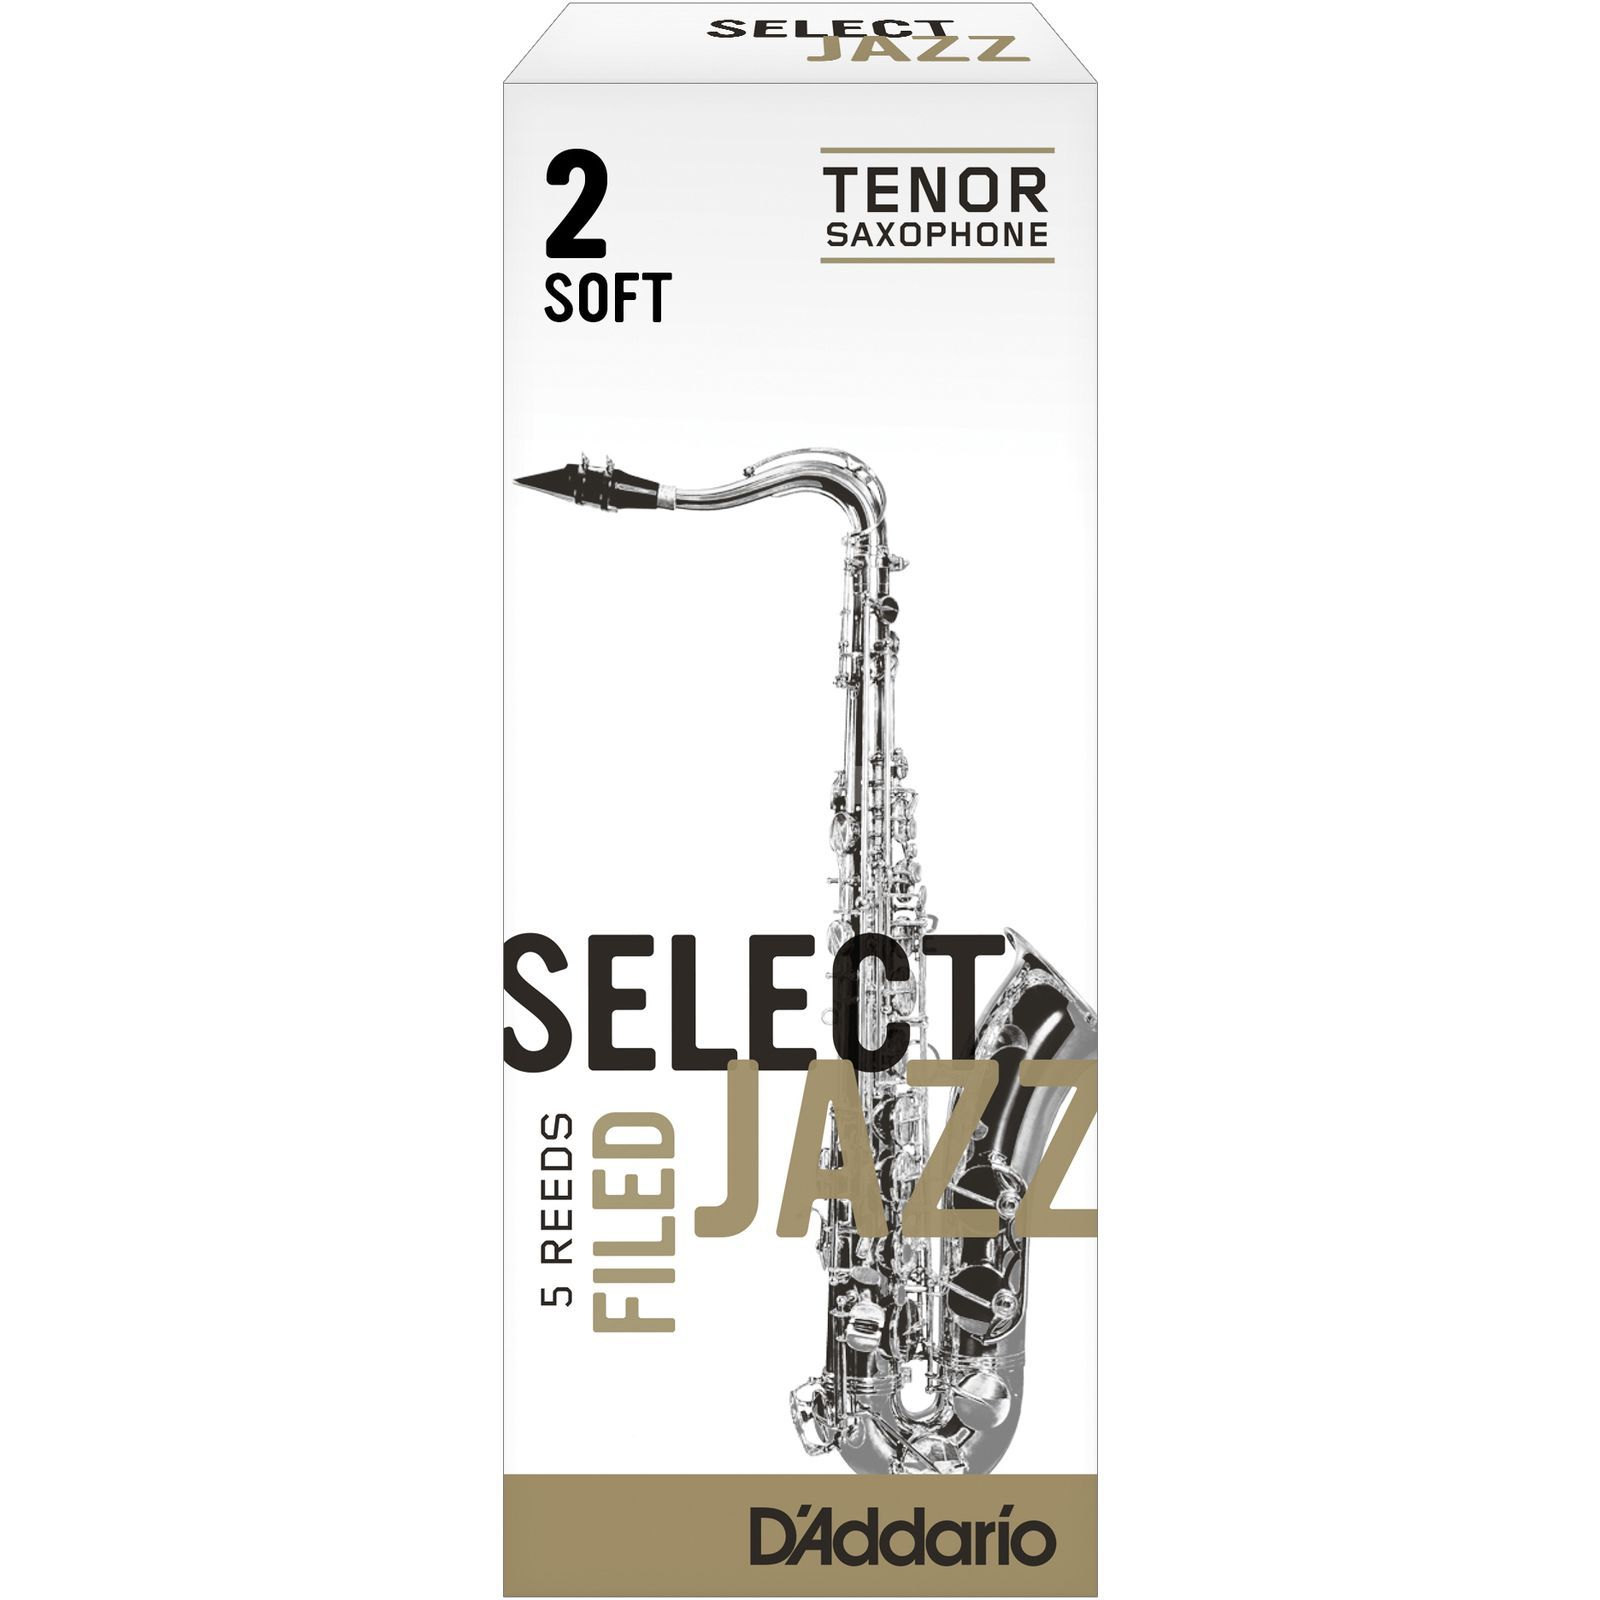 D'Addario Woodwinds Tenor Sax Reeds 2S Box of 5 Zdjęcie produktu